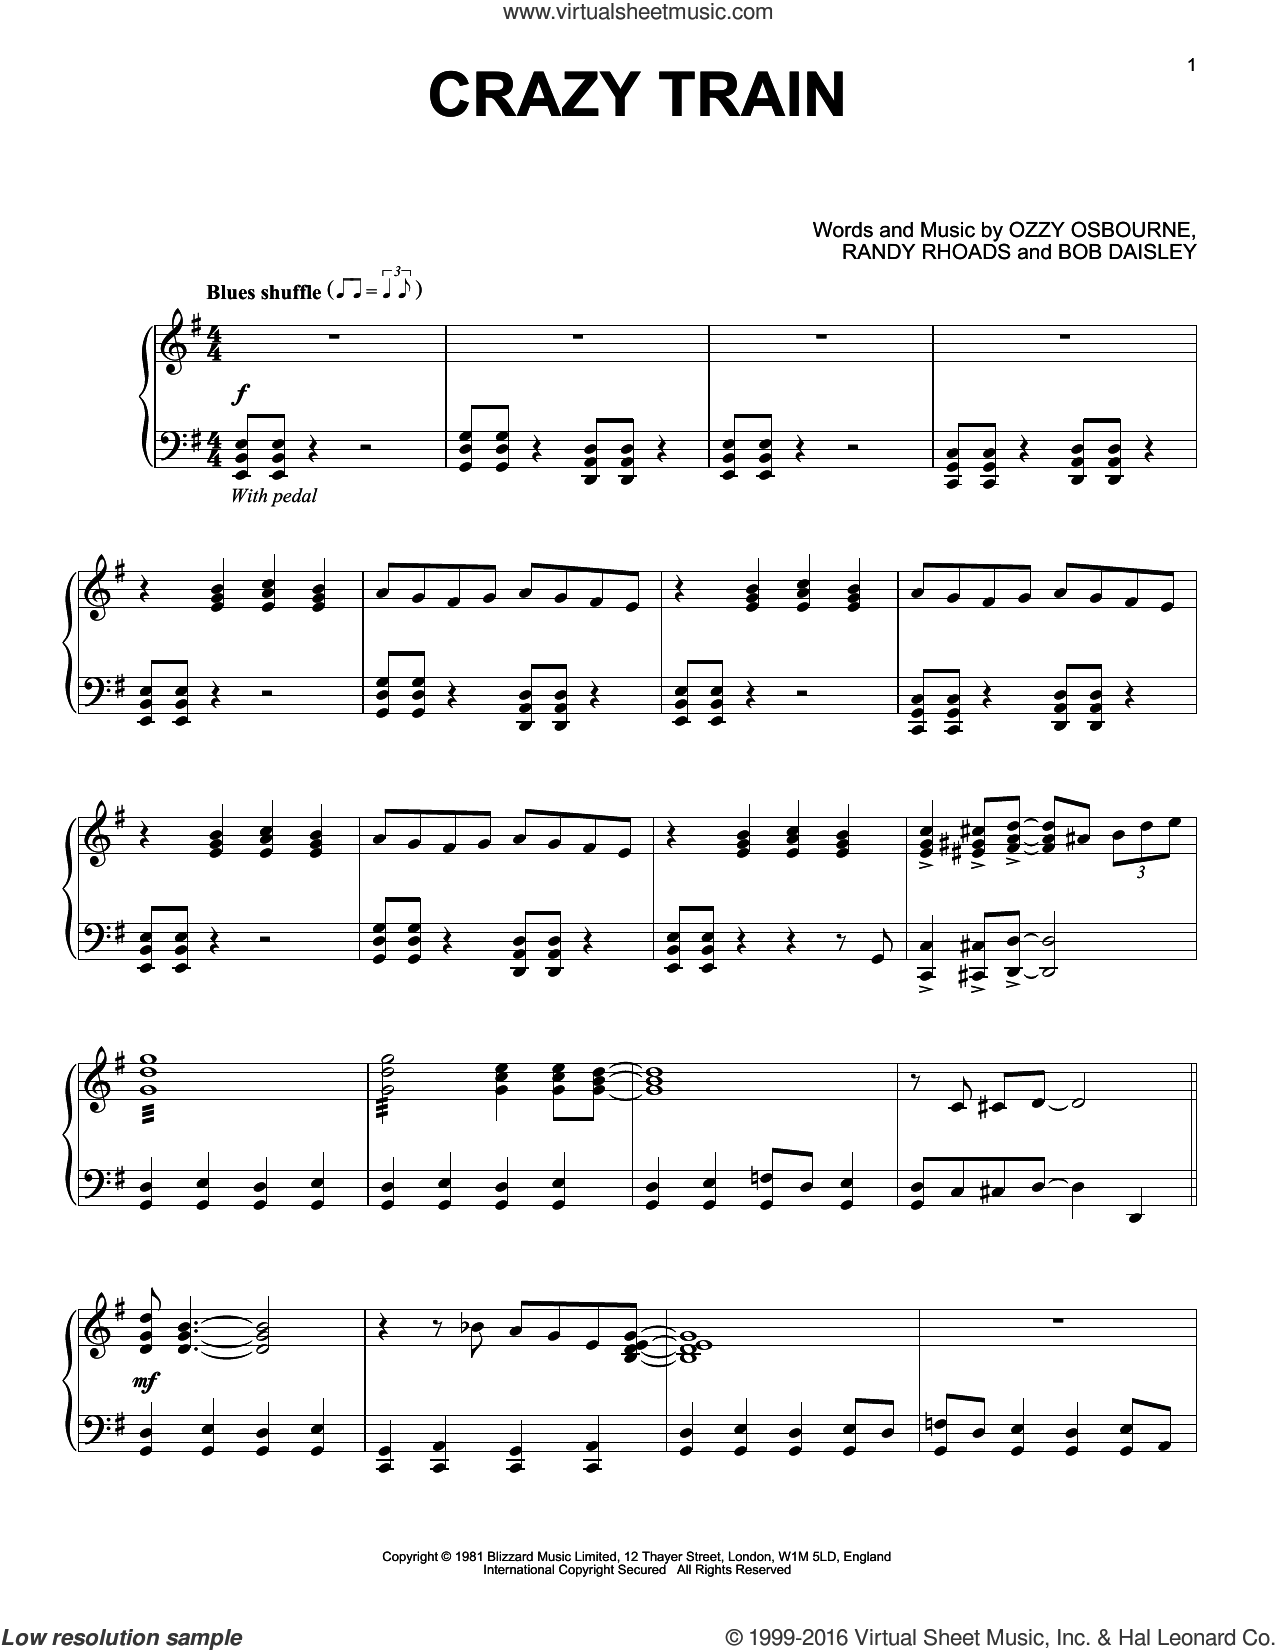 Crazy Train [Jazz version] sheet music for piano solo by Ozzy Osbourne, Bob Daisley and Randy Rhoads, intermediate skill level